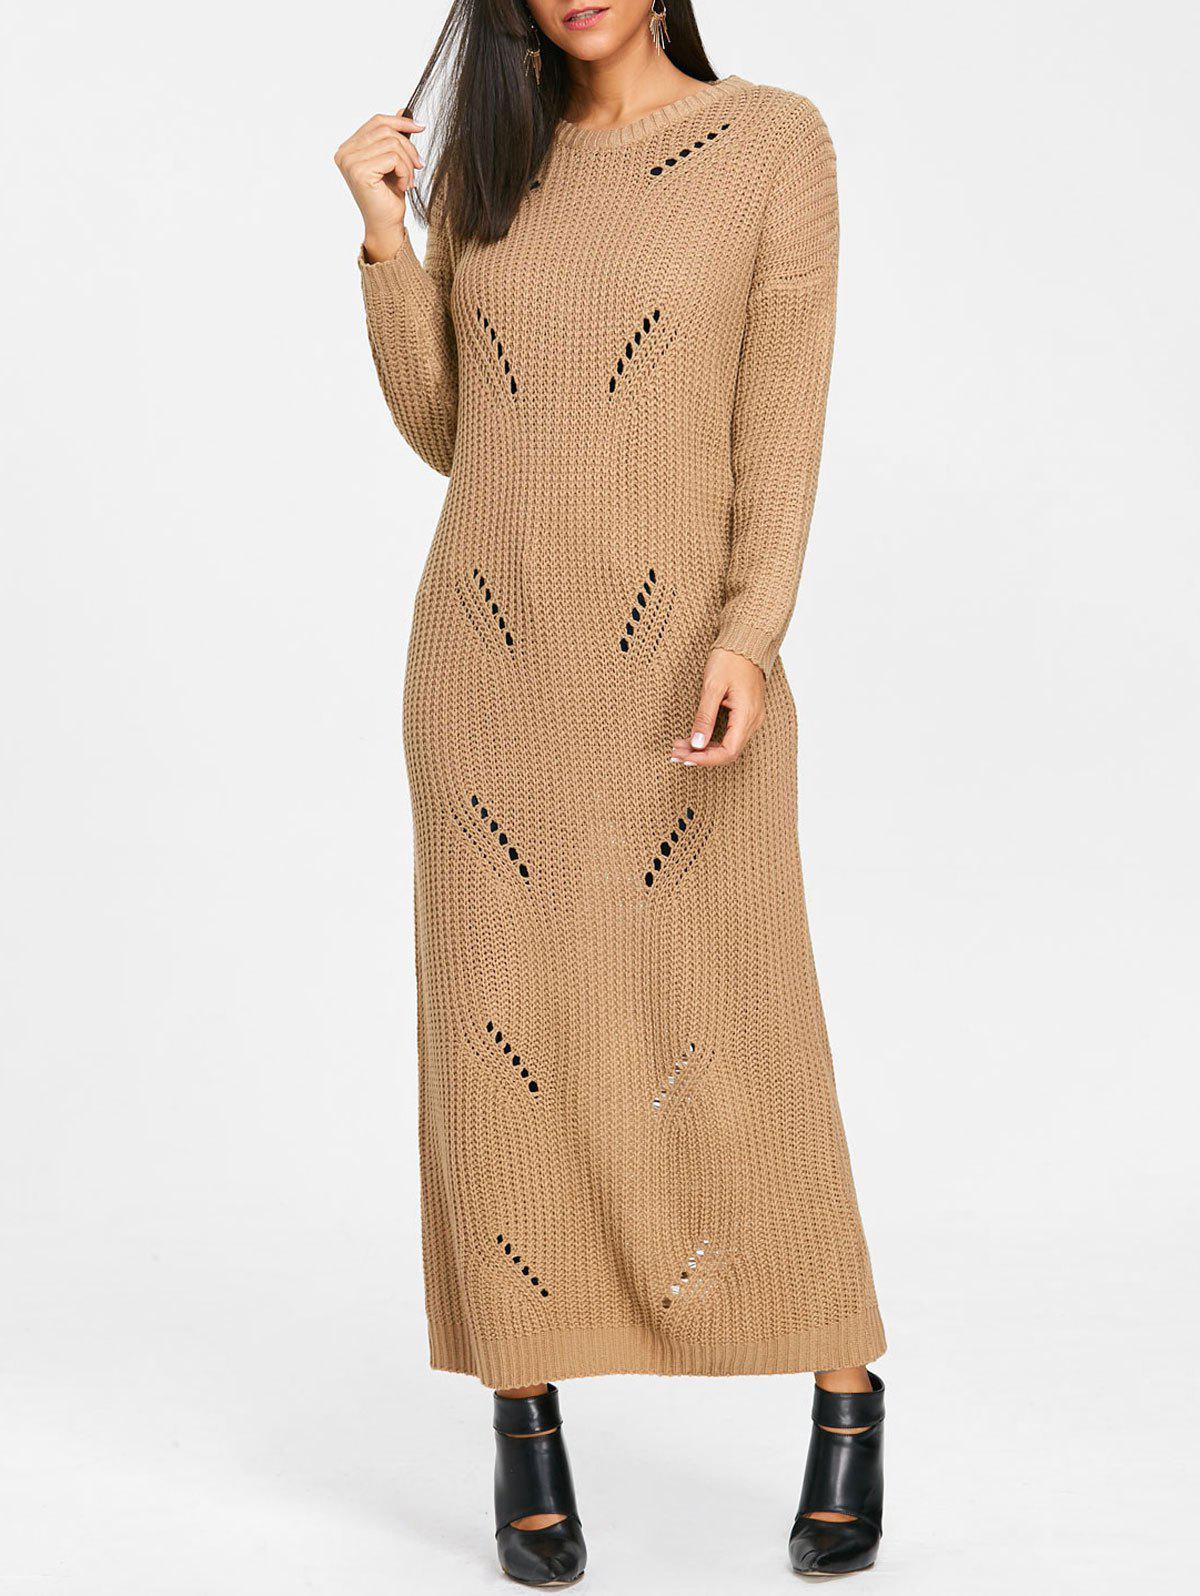 Ripped Chunky Knit Long Dress - KHAKI S